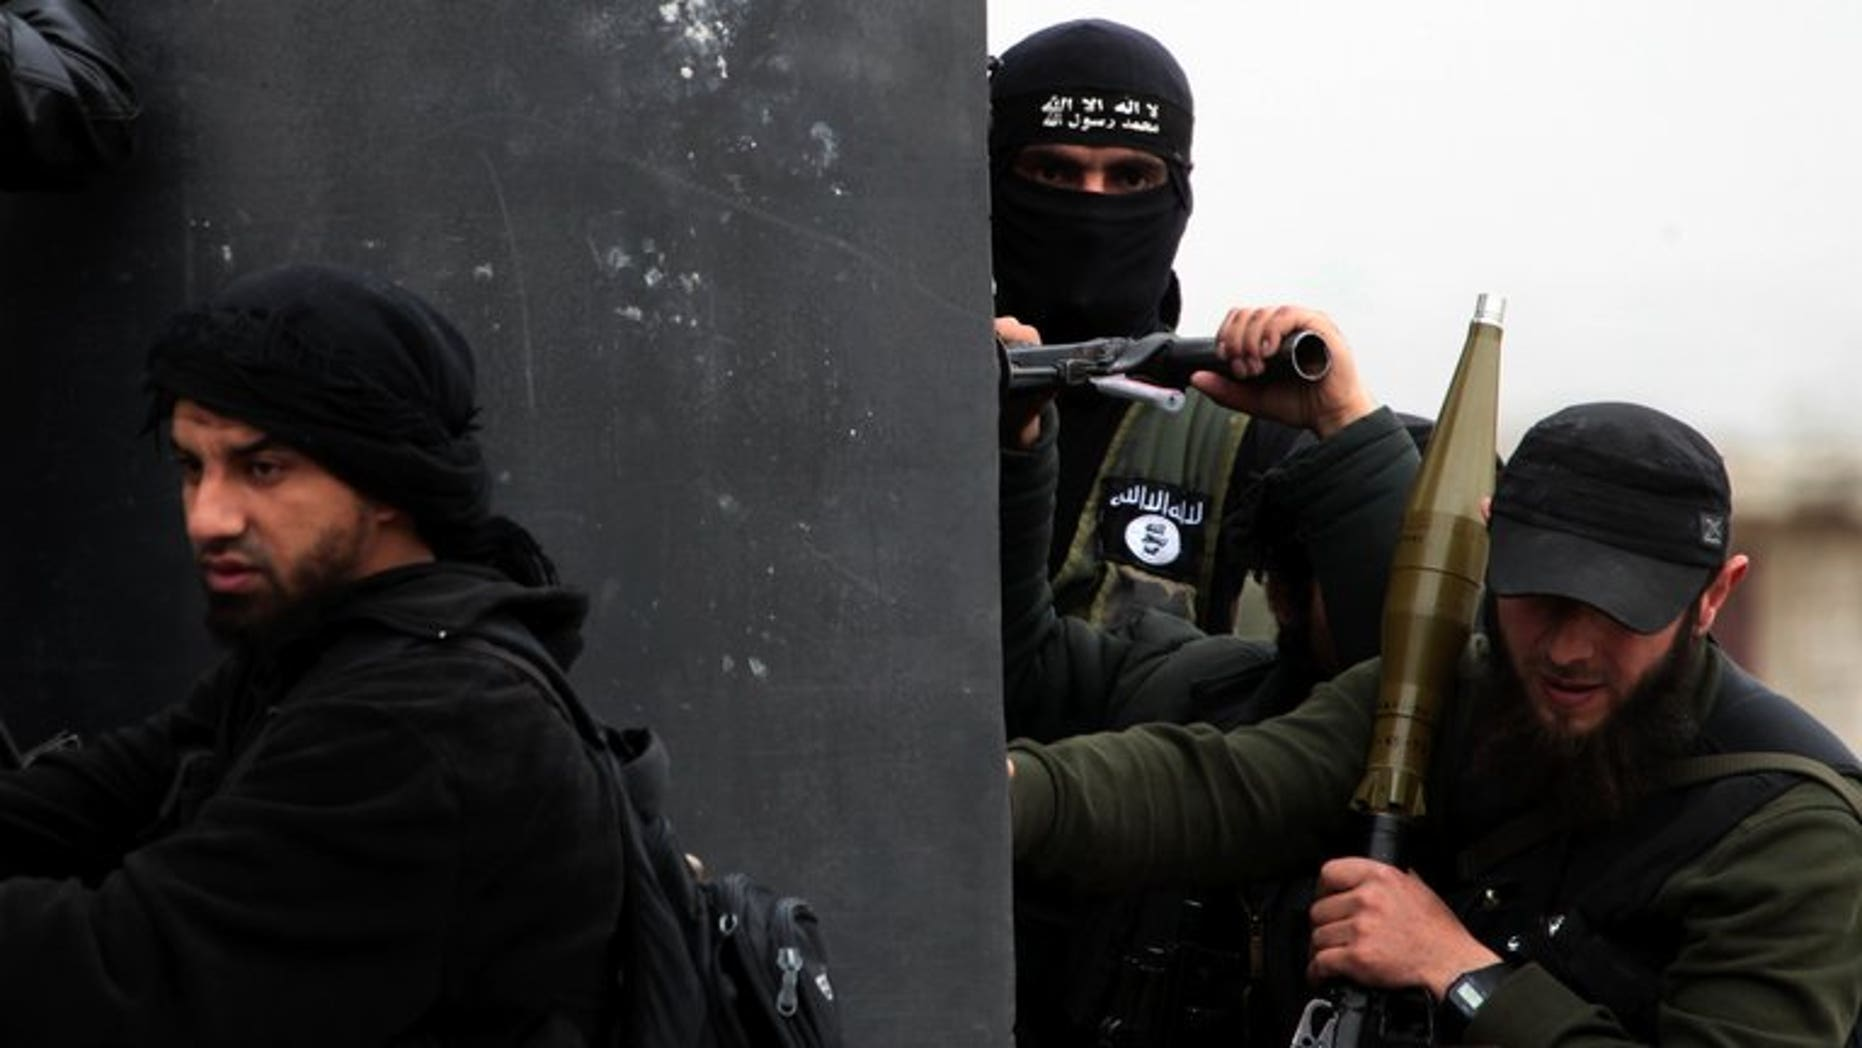 Al-Nusra fighters arrive to hold positions in the Syrian village of Aziza on the southern outskirts of Aleppo on April 4, 2013. For years, Maher Sukkar, a Palestinian living in Lebanon, belonged to a boy scout troupe and played music. No one expected him to join the radical Al-Nusra Front and die fighting in Syria.